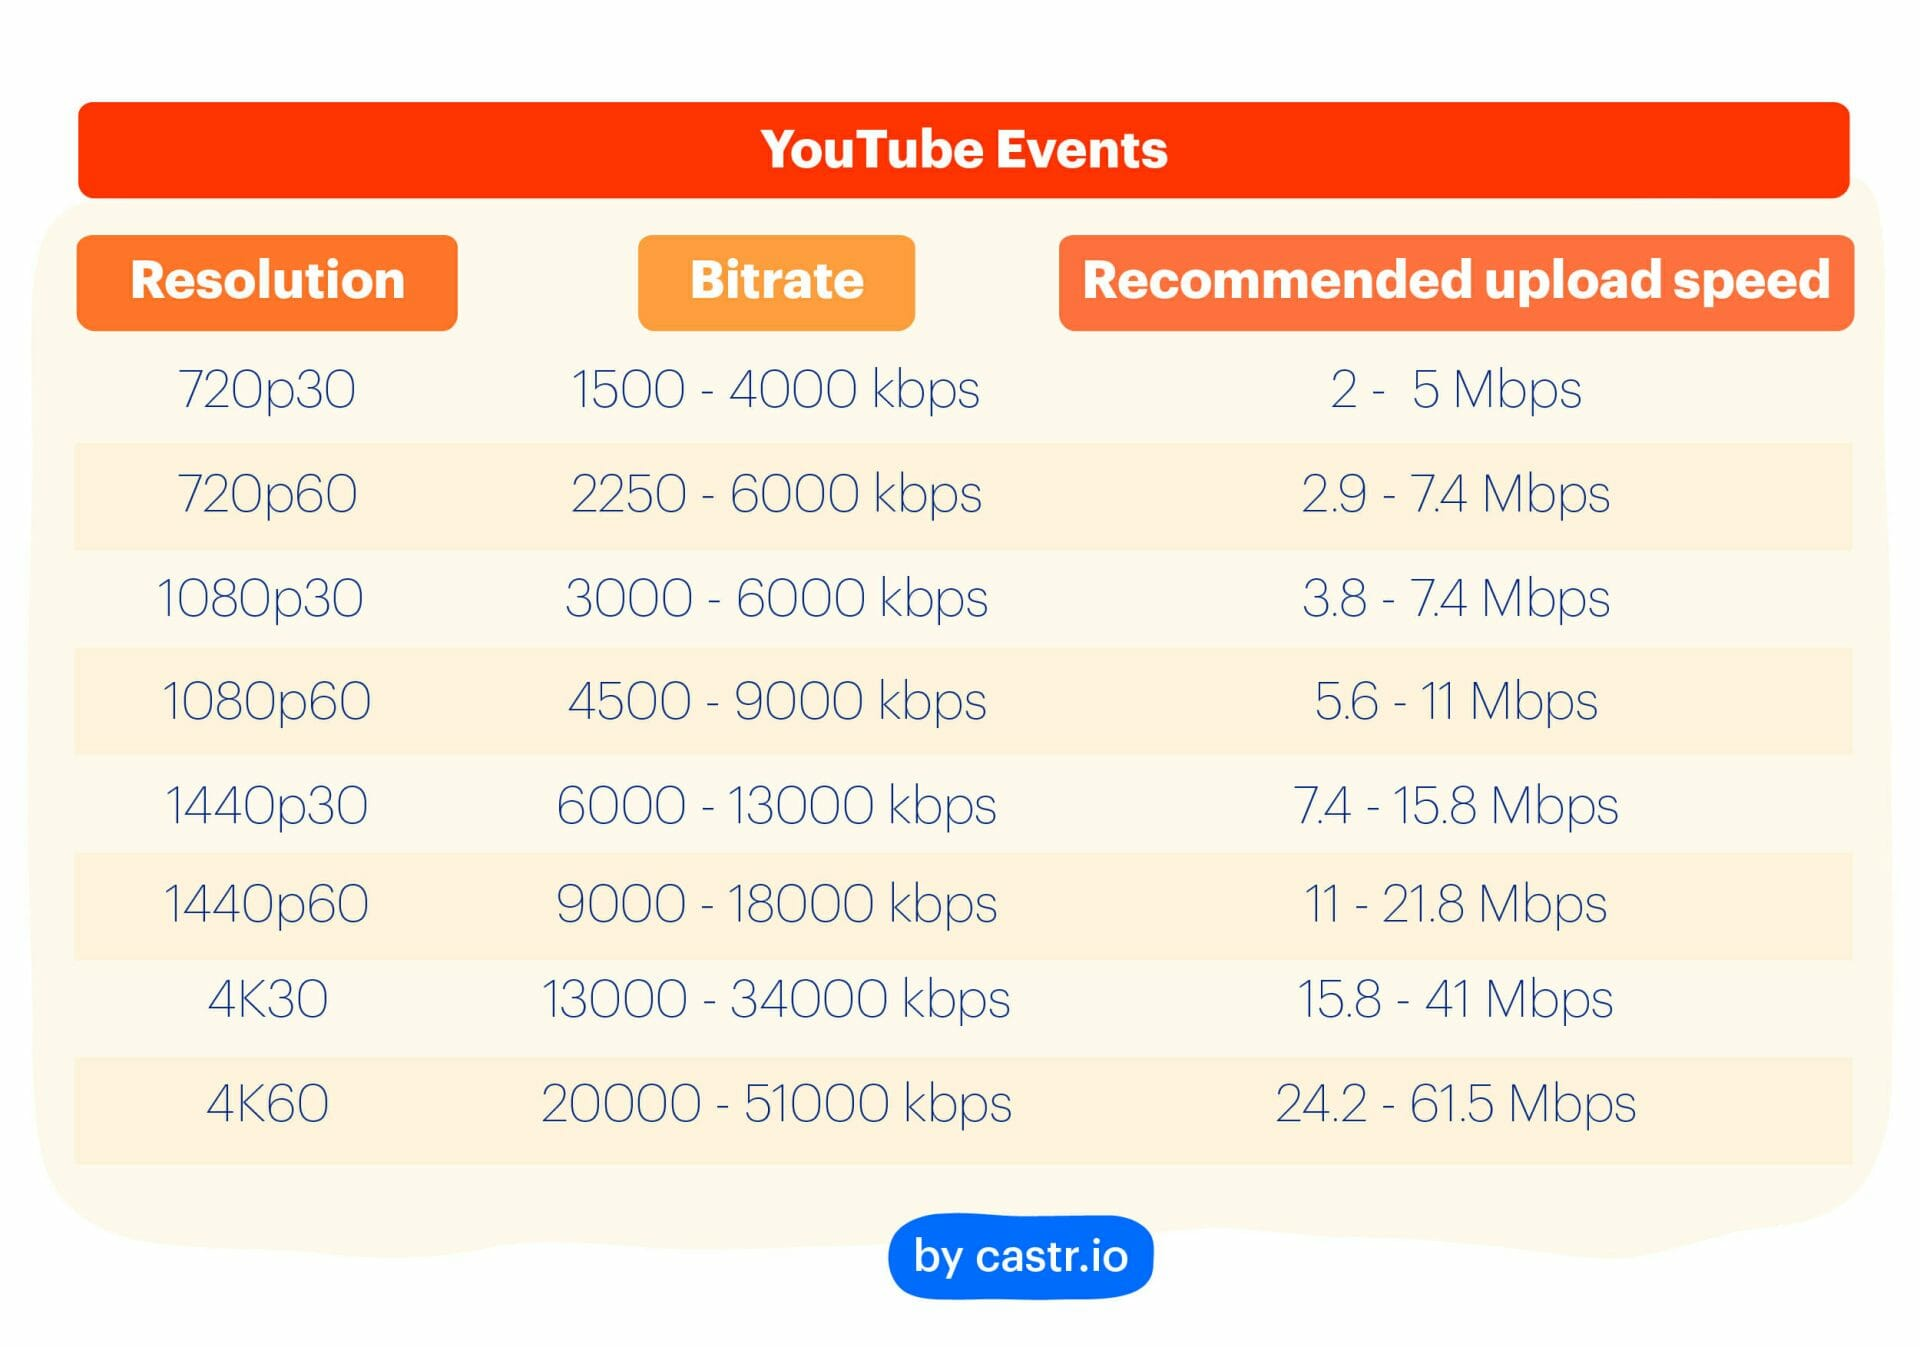 The Best Upload Speed for Livestreaming